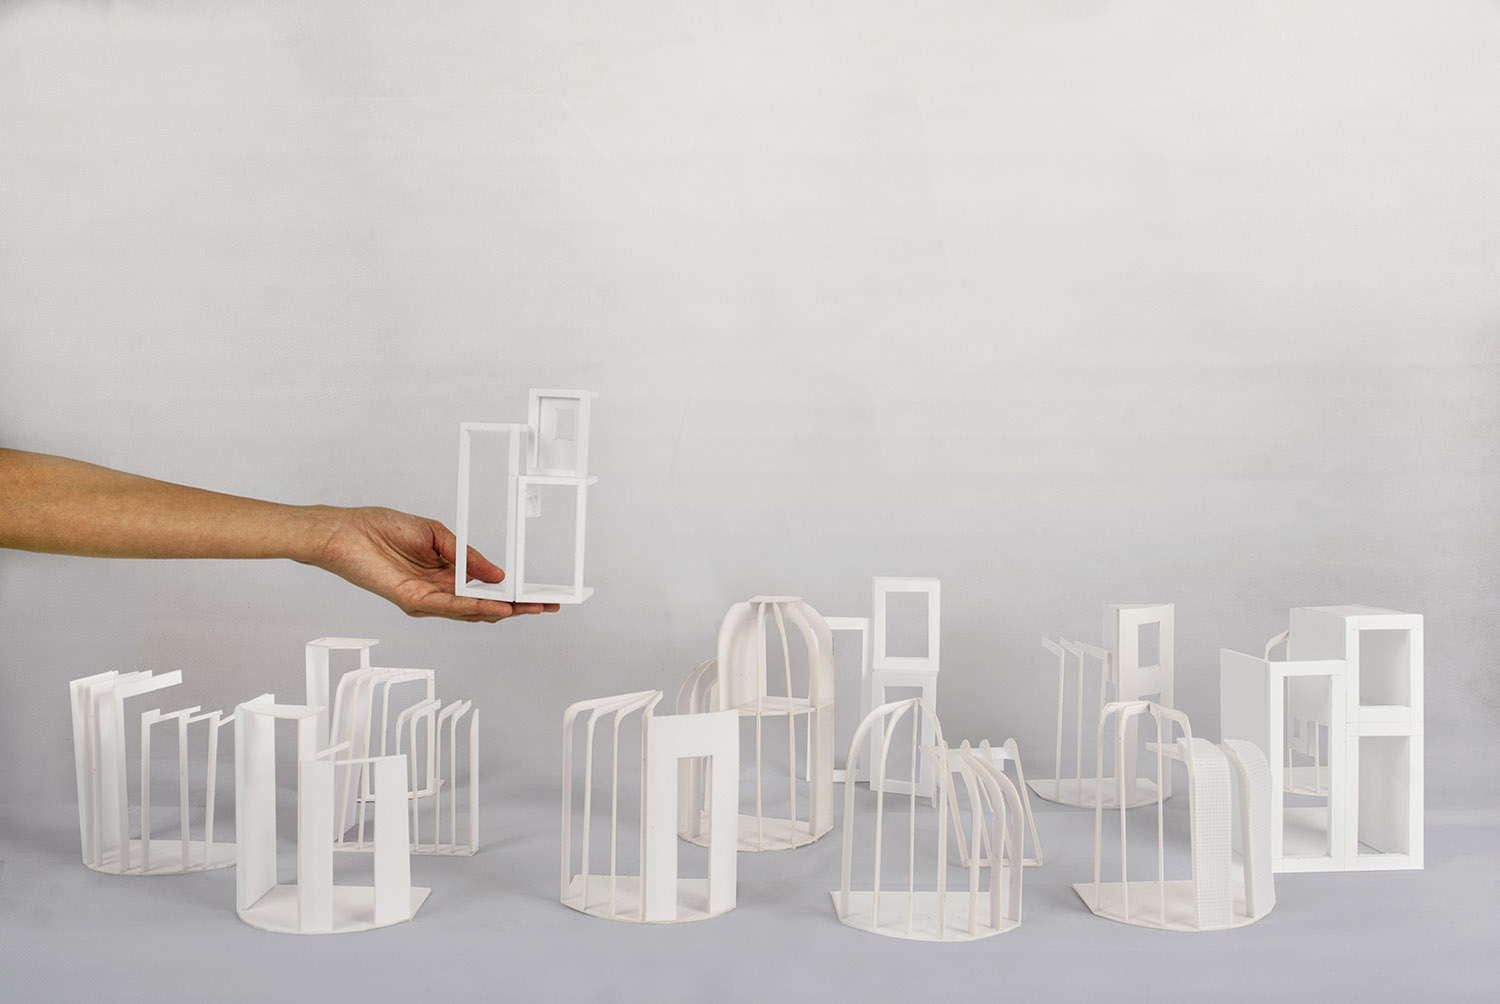 Formal models exploring the terraced house character and typology